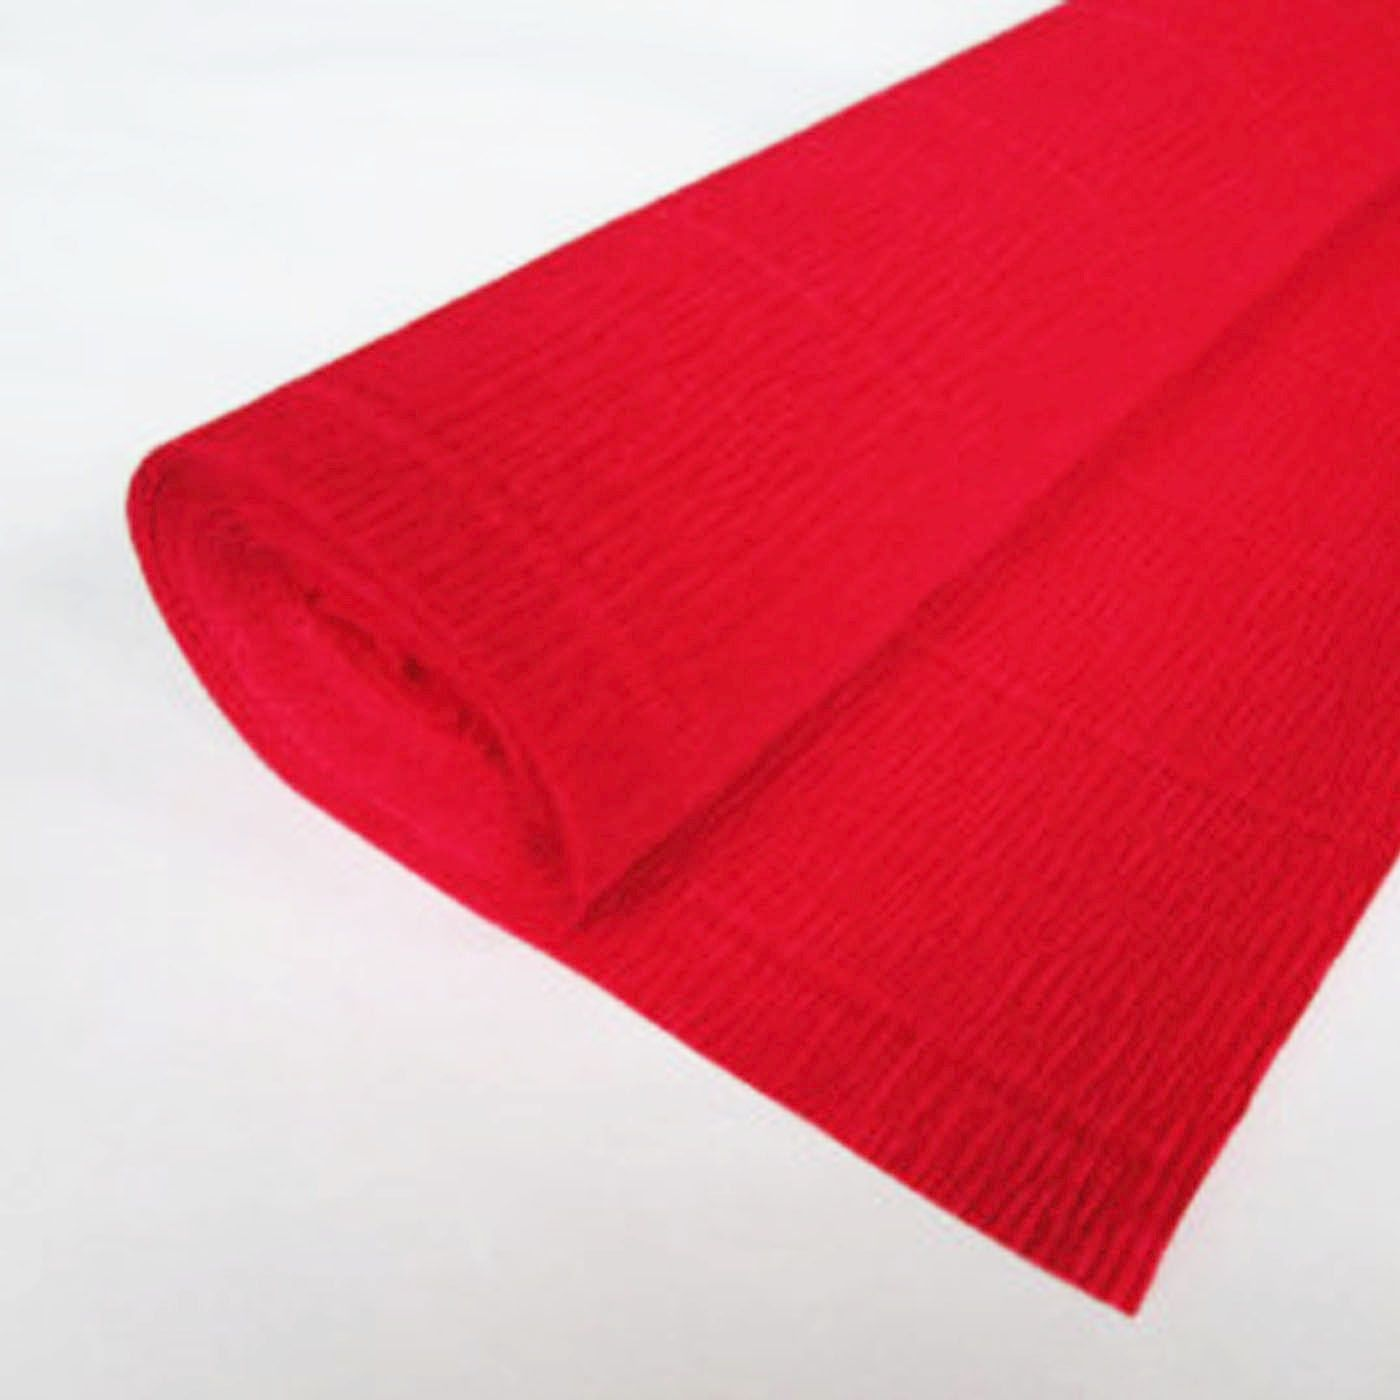 Crepe paper 3m 65% Stretch Flame Red